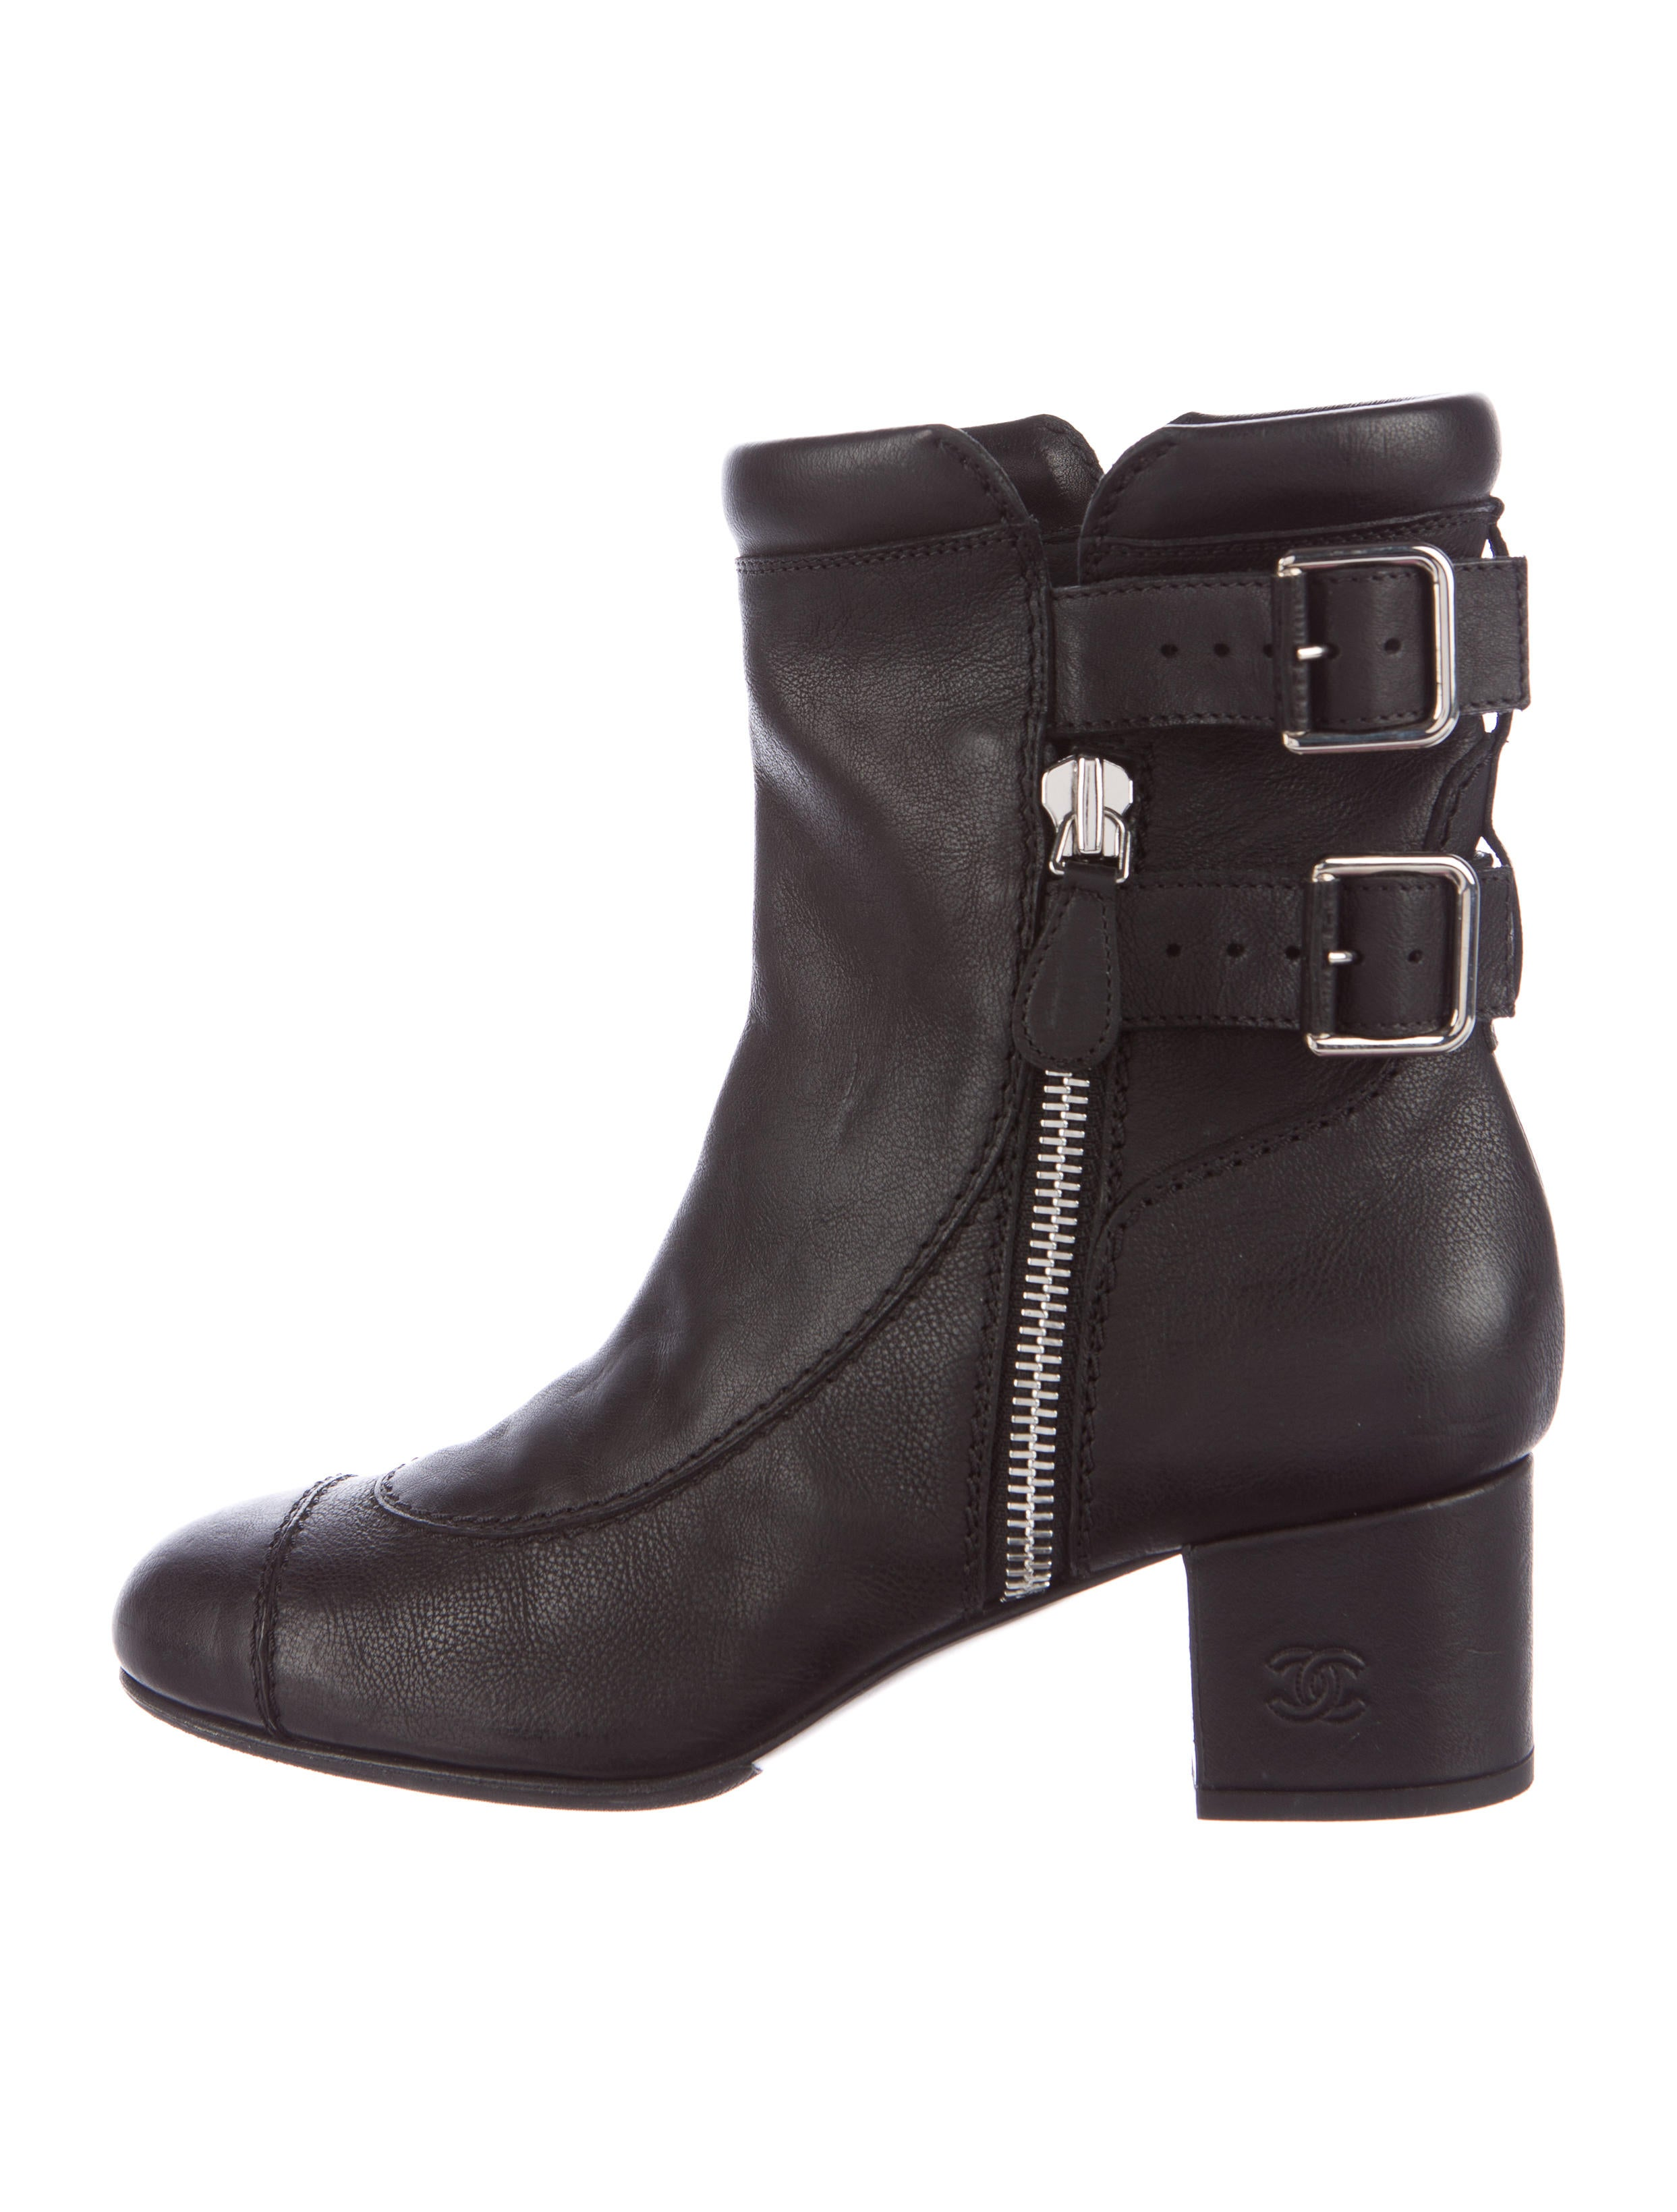 Overstock uses cookies to ensure you get the best experience on our site. Journee Collection Women's Link High Heel Faux Suede Ankle Boots. 50 Reviews. SALE. More Options. Quick View. Journee Collection Women's 'Reggi' Stacked Heel Laser Cut Buckle Booties. 29 Reviews.